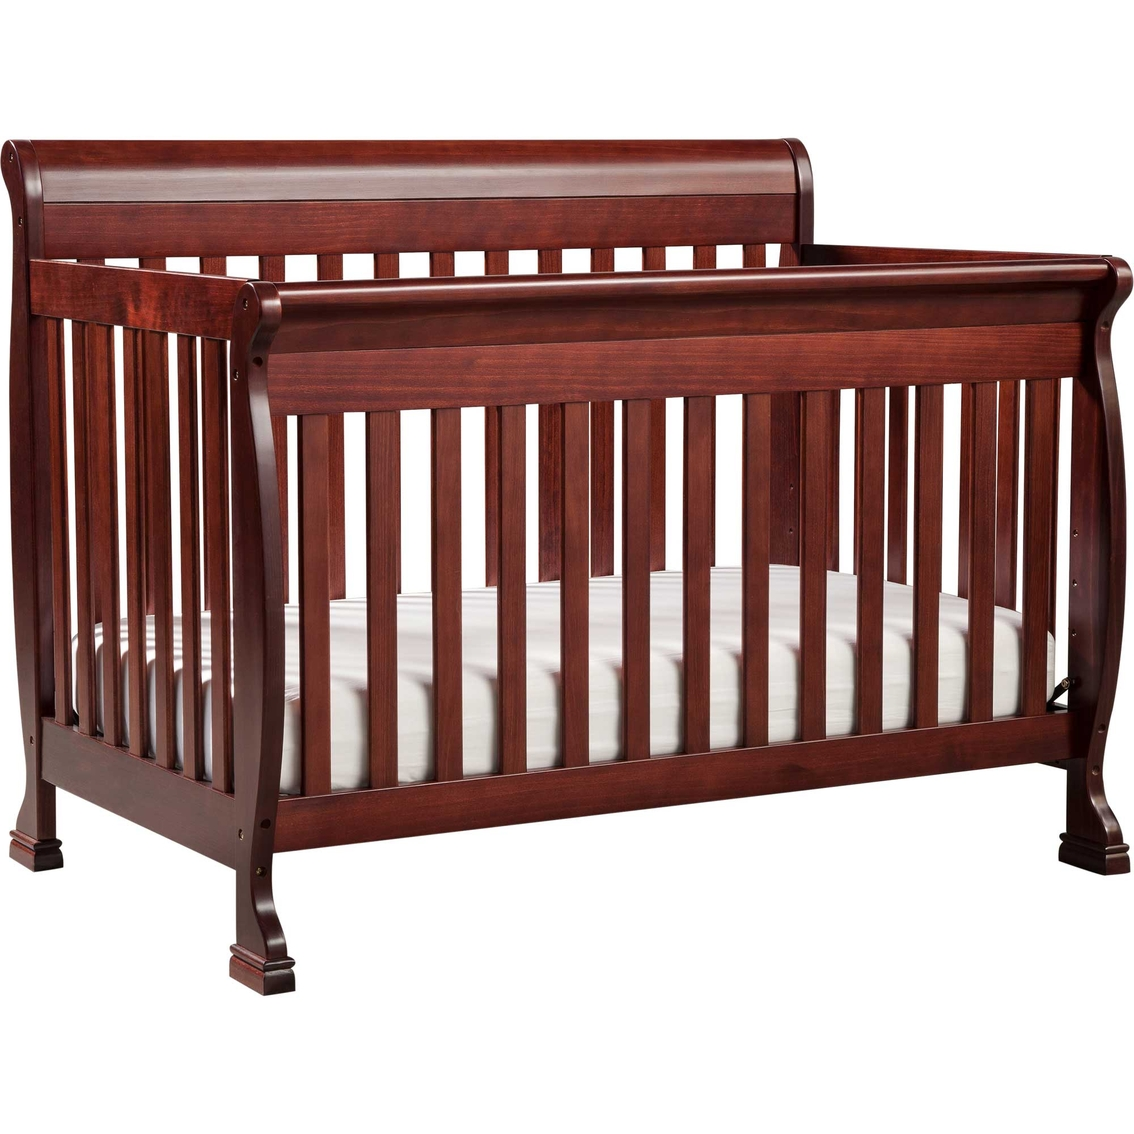 84 Crib Shop Shop Baby Cribs Bed Wood Bunk Beds Playpen Future Furniture We Have Amazing